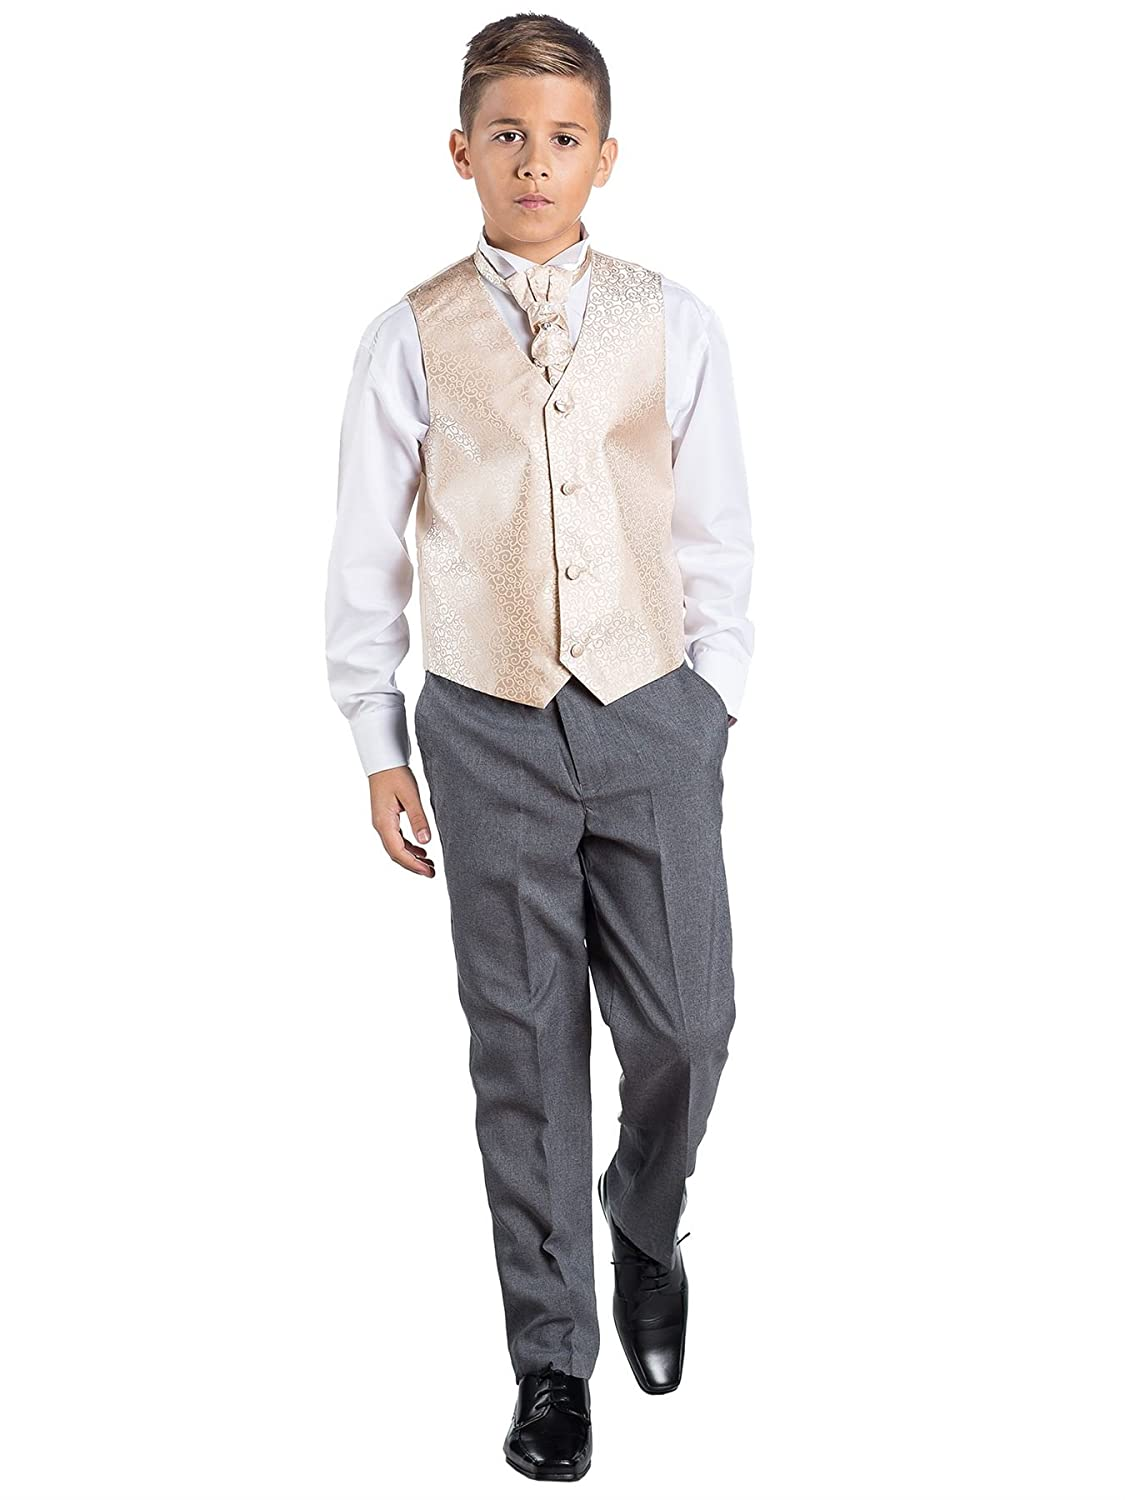 Boys Formal Suit Paisley of London Page Boy Outfit Grey Trousers Waistcoat Suit Wedding Suit